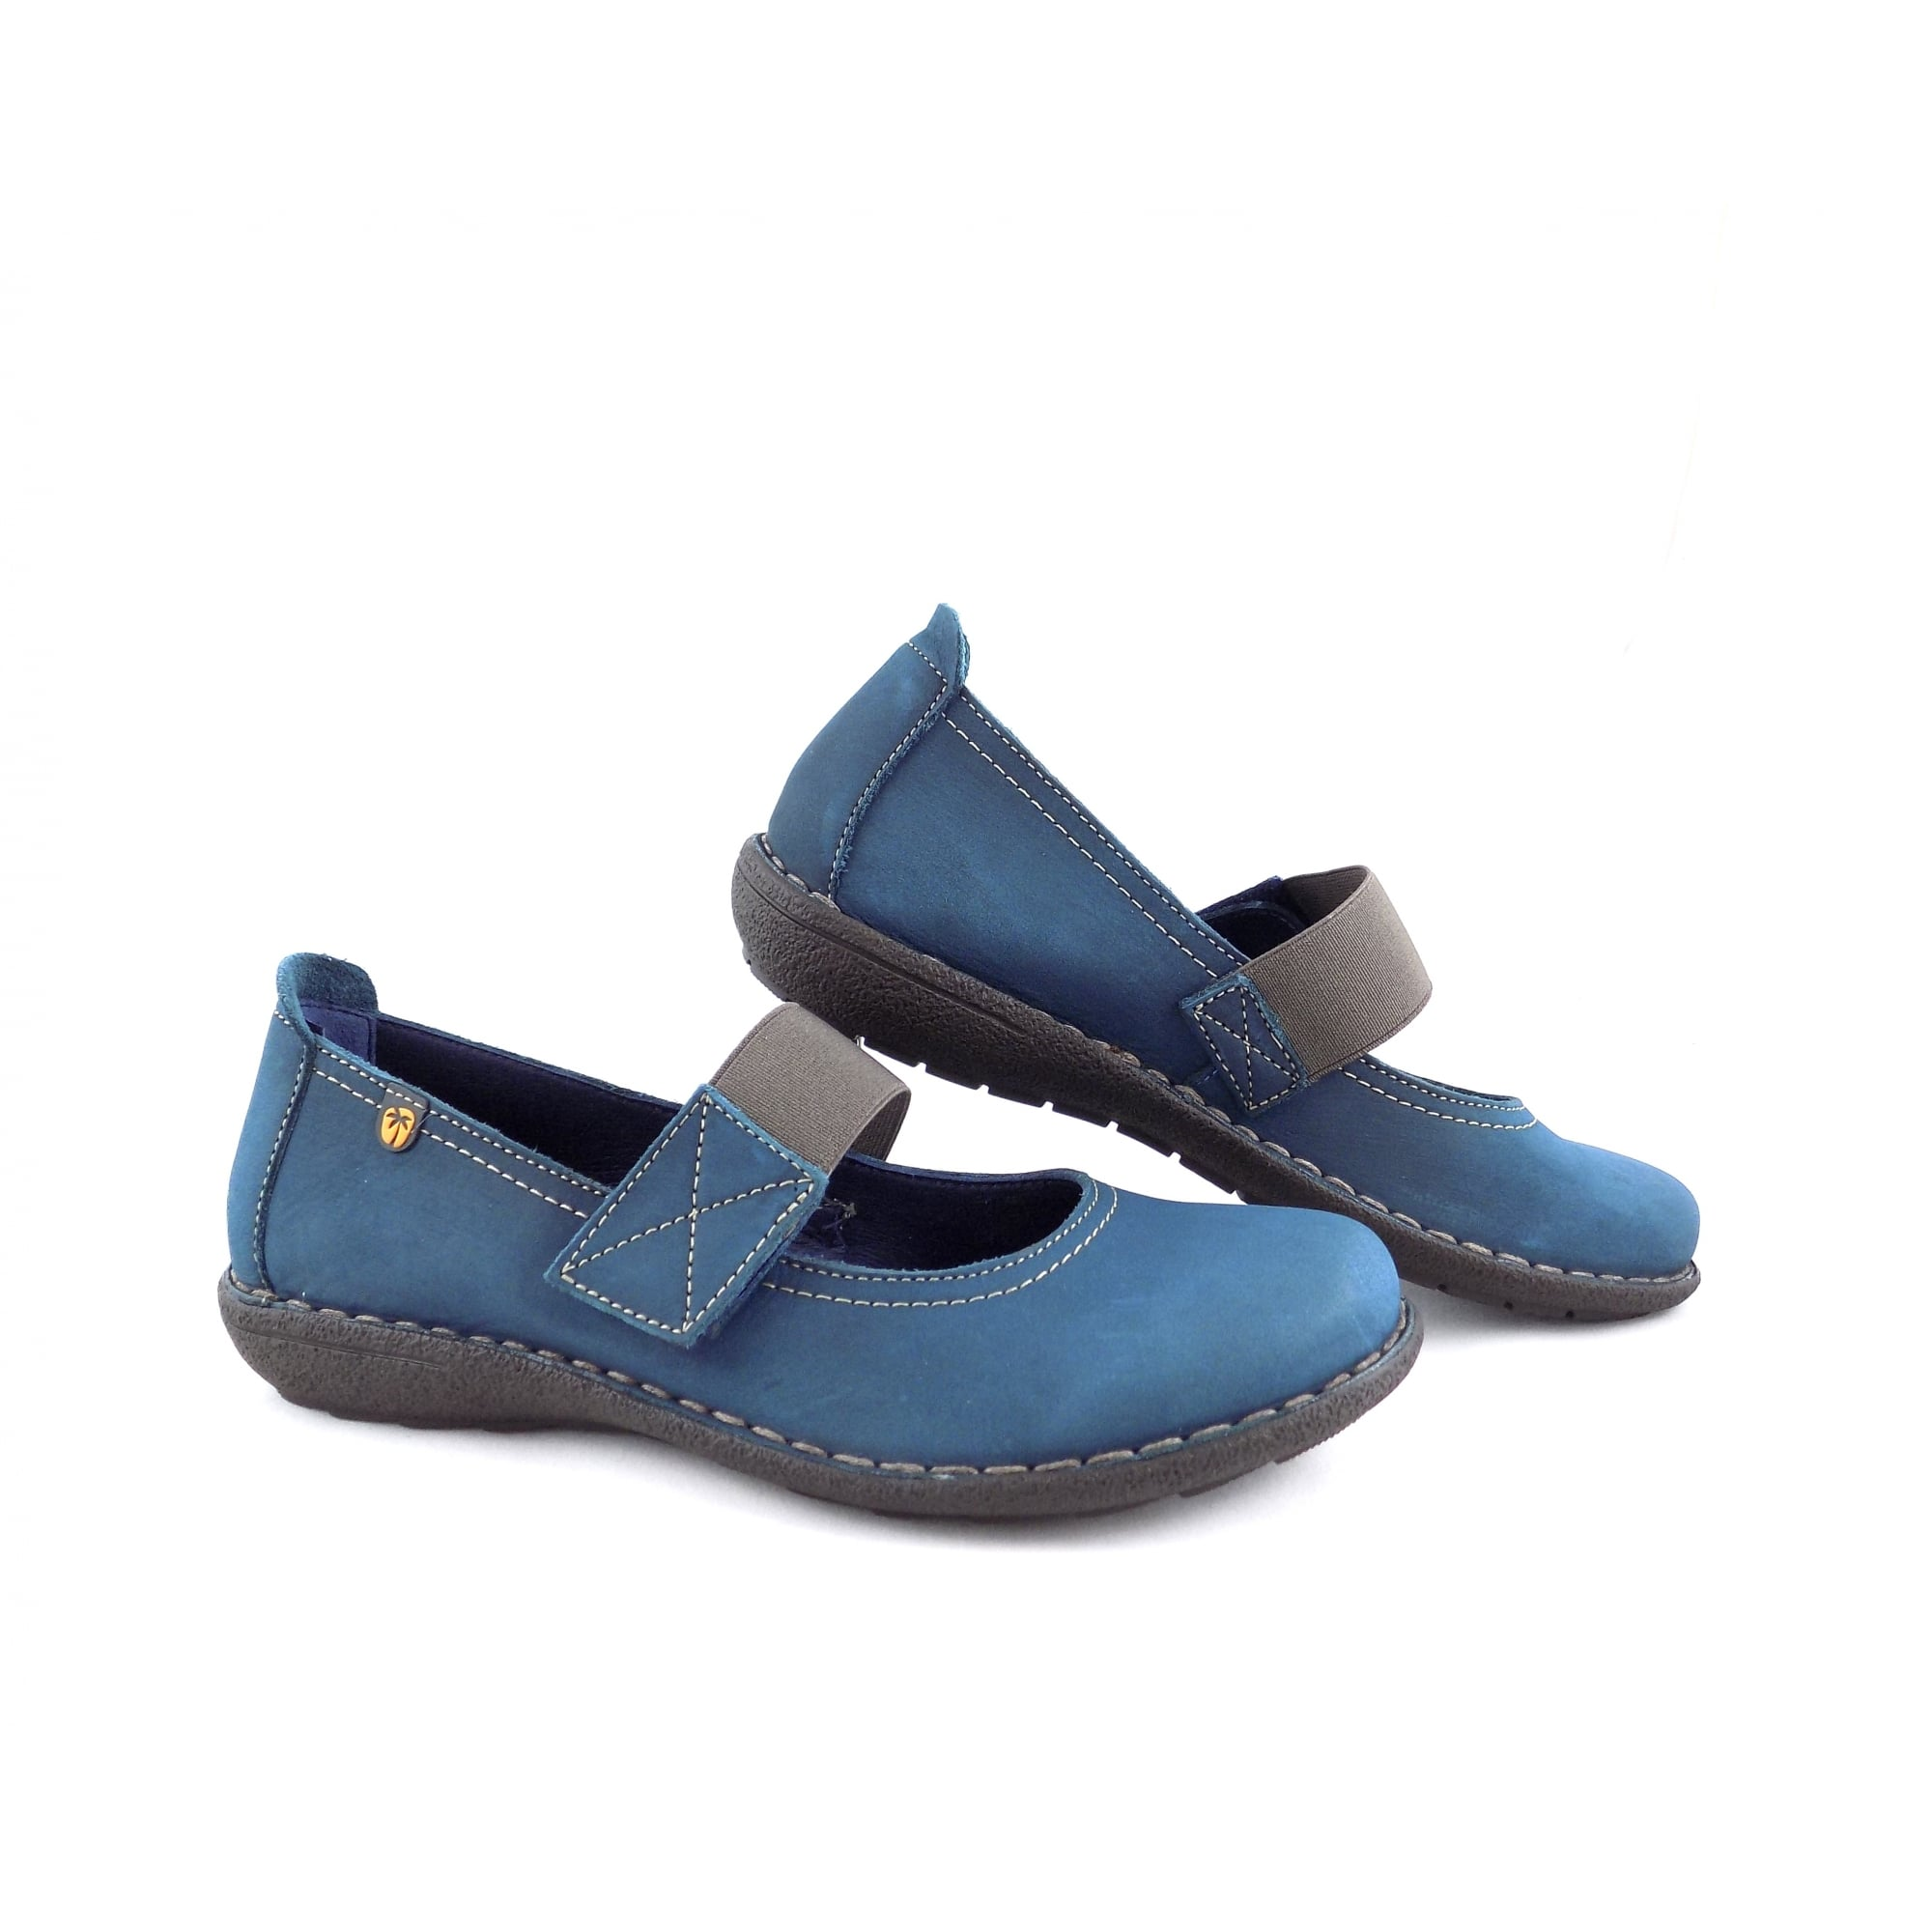 Jungla 4750 Flat Mary Jane Shoes in